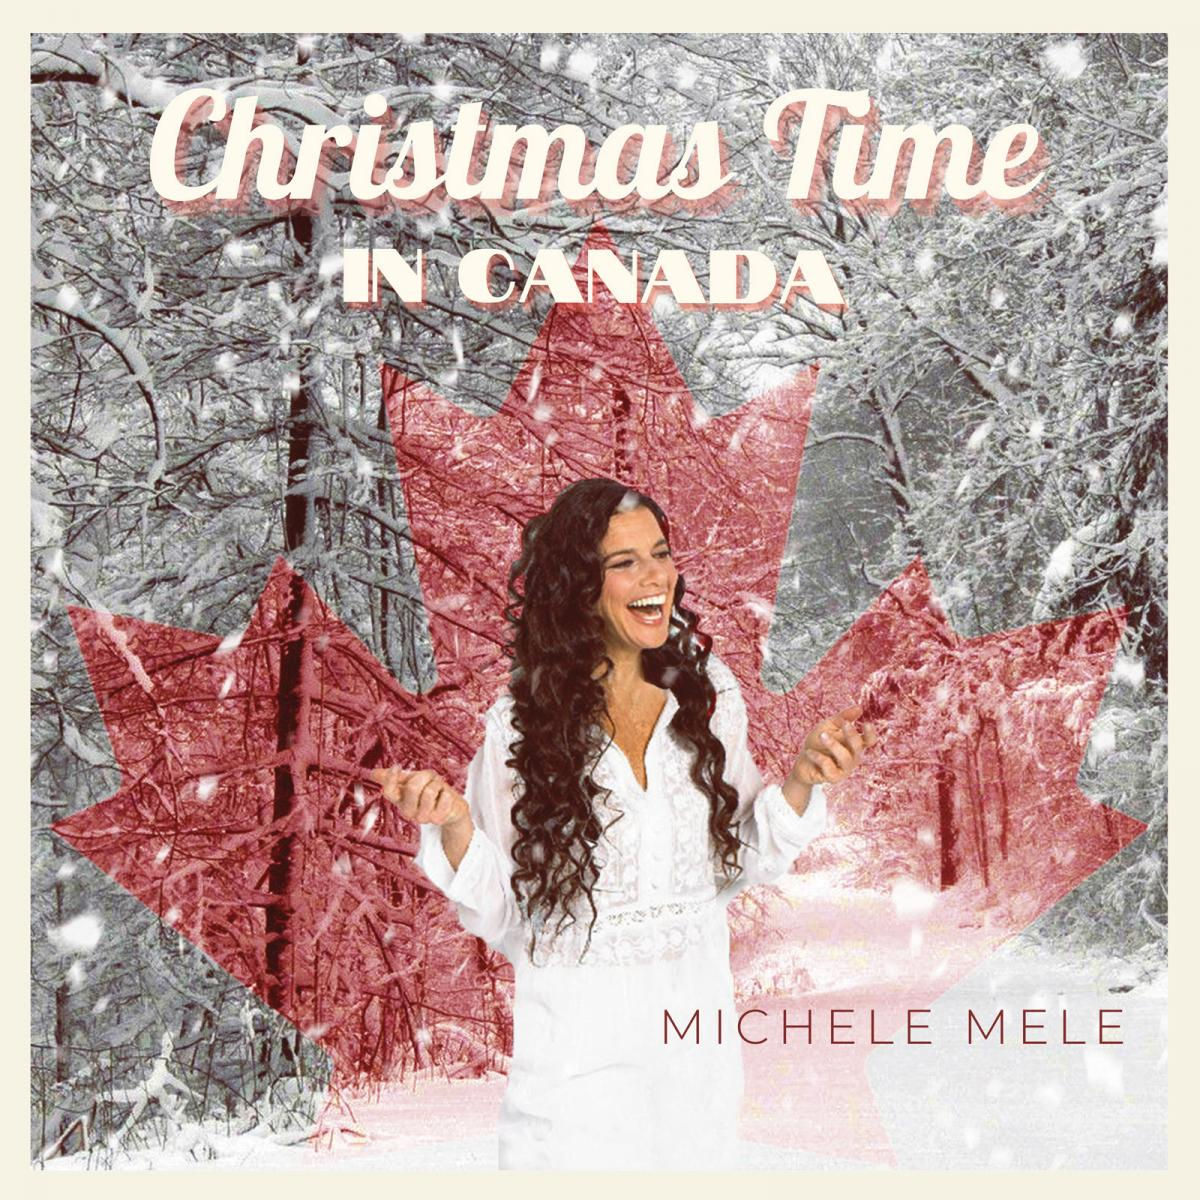 Michele Mele Christmas Time in Canada